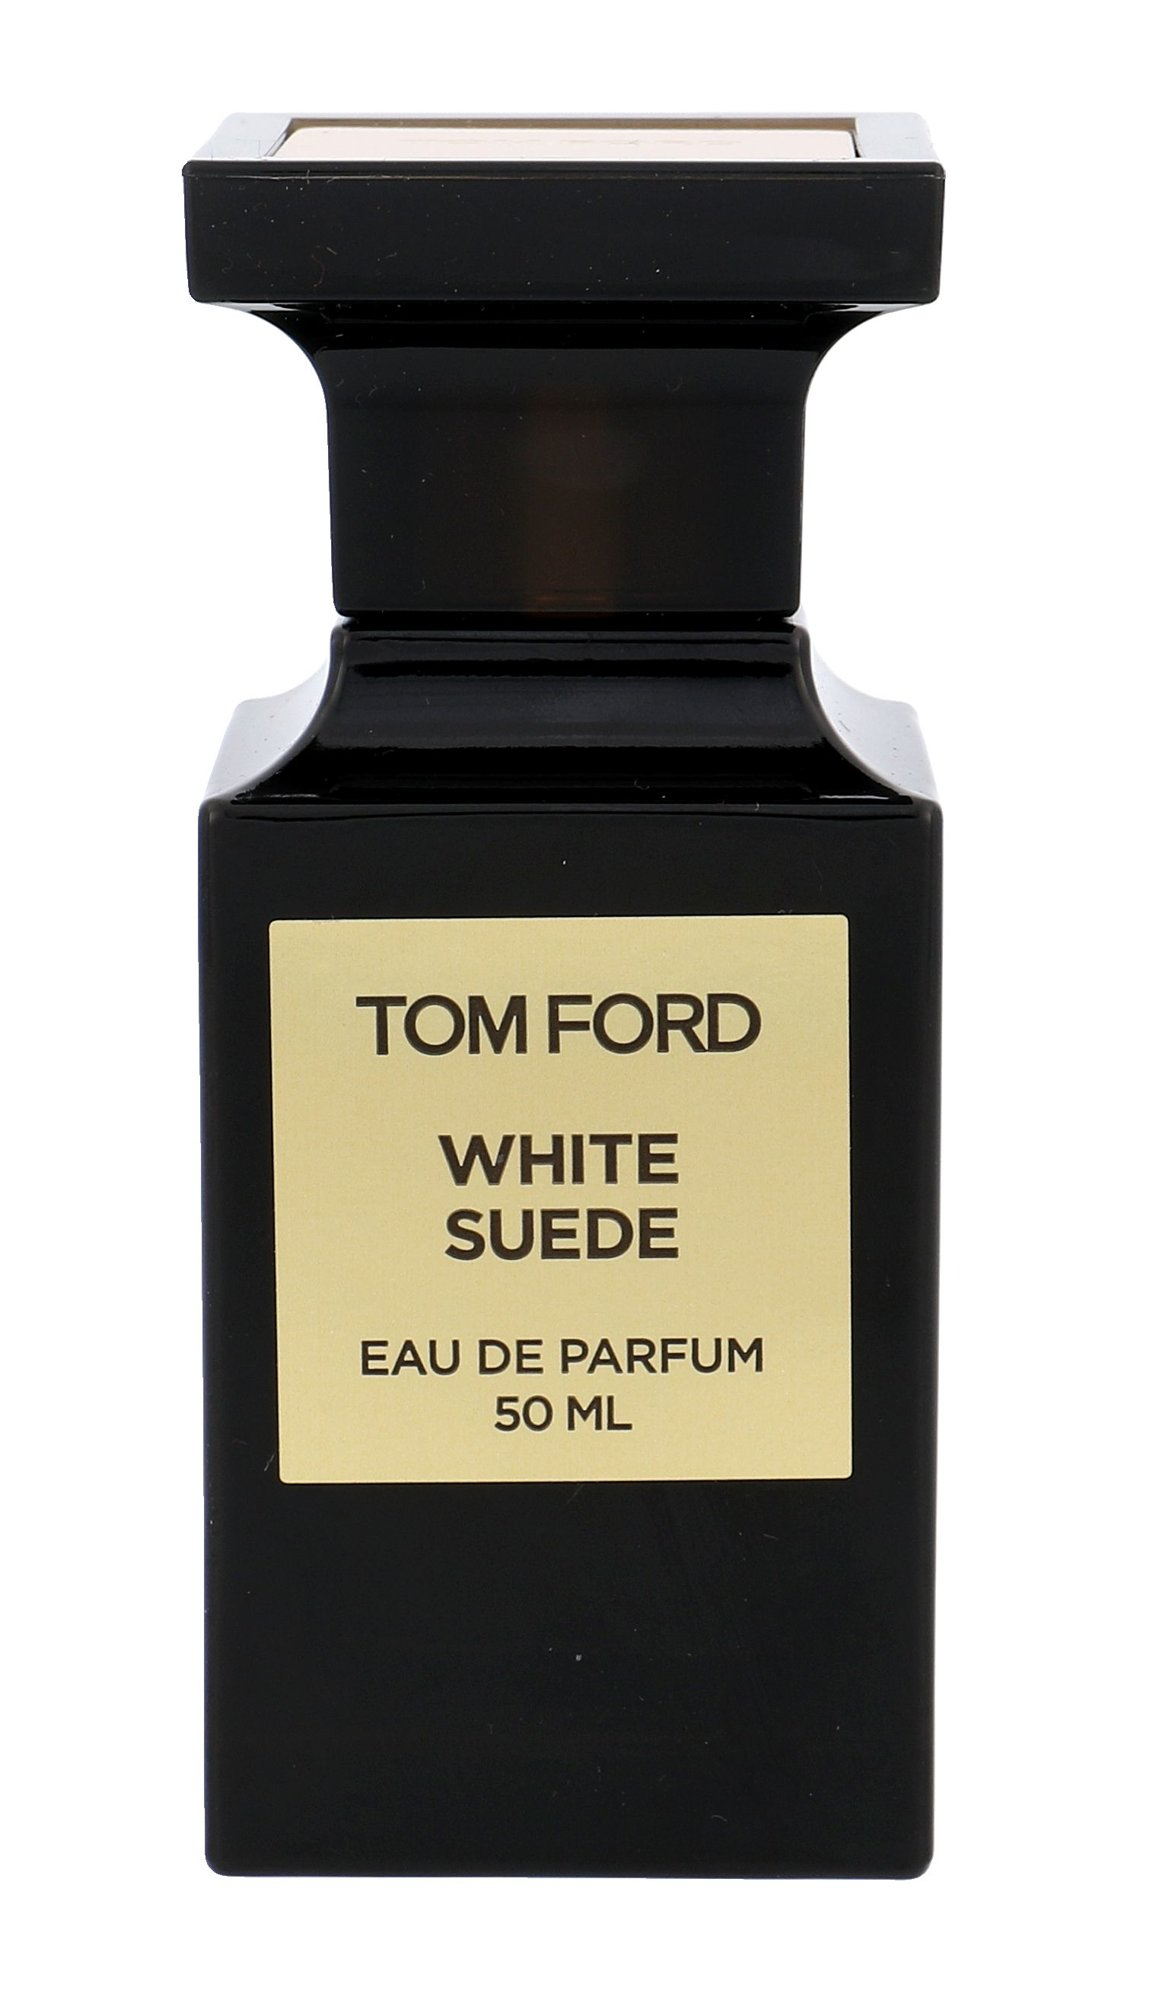 TOM FORD White Musk Collection White Suede EDP 50ml